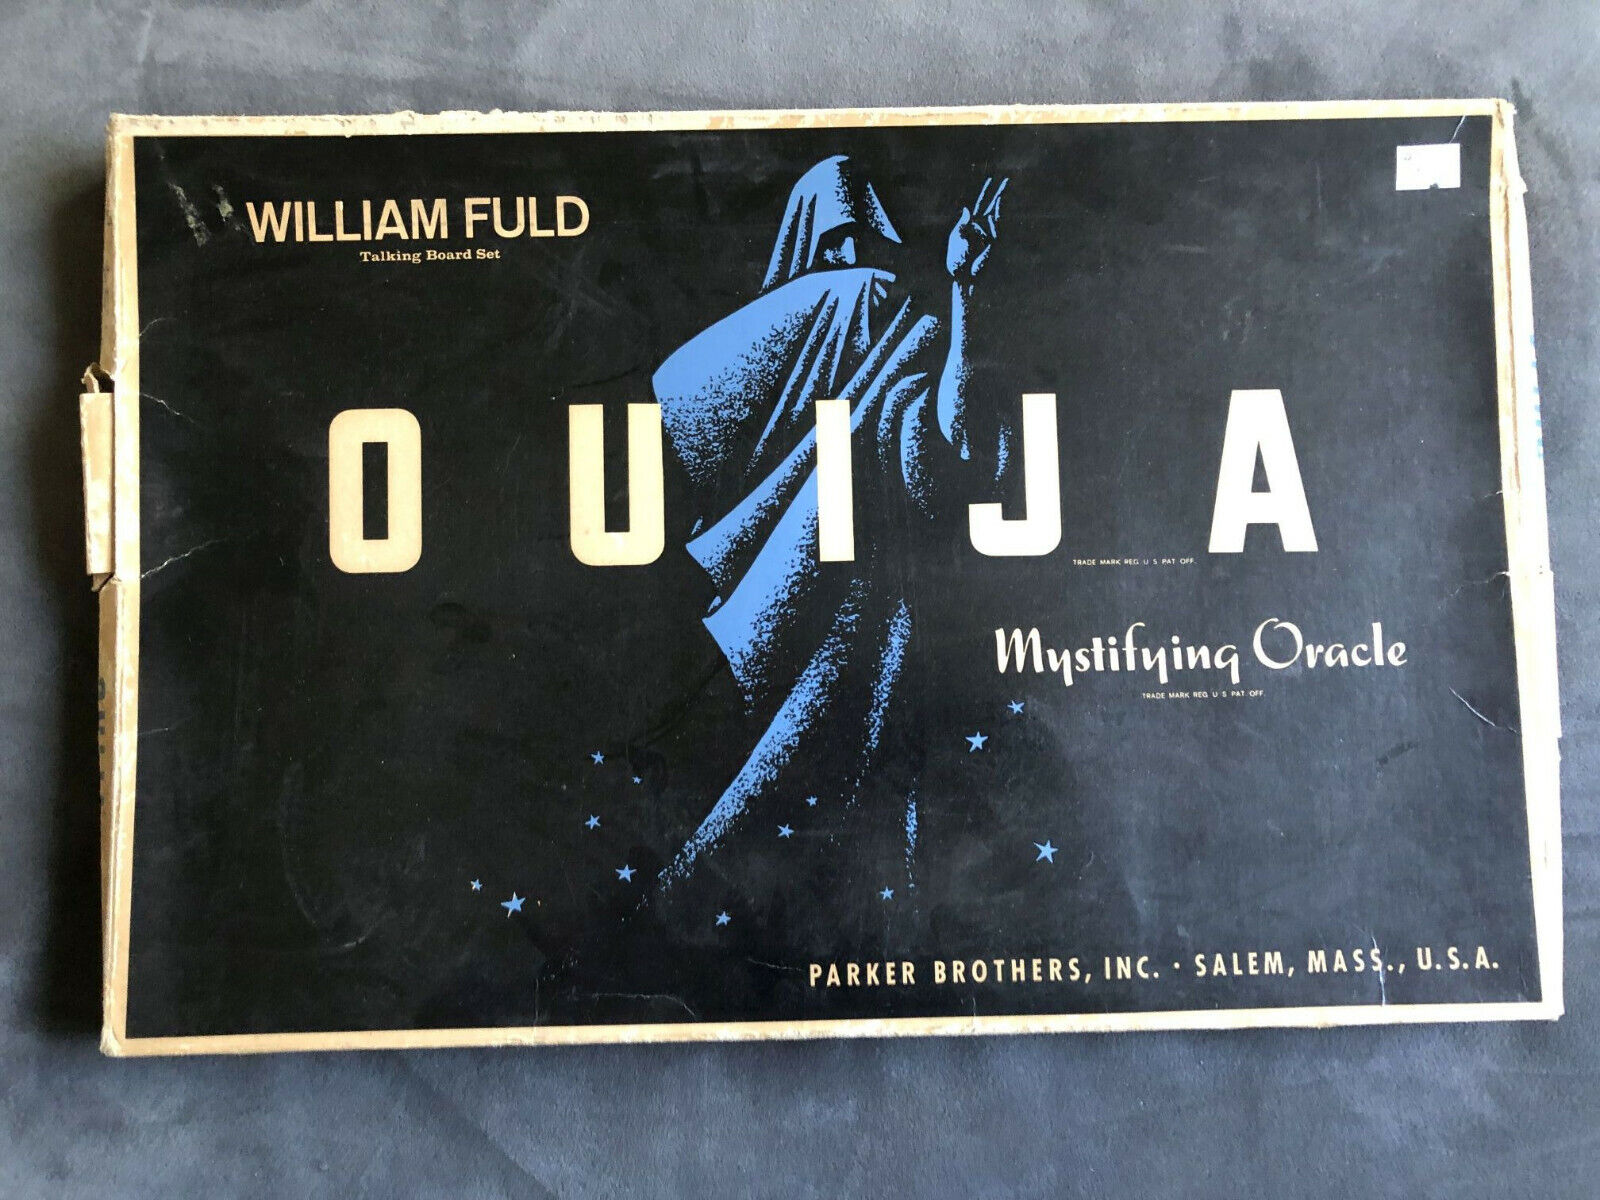 1960 s Ouija Board Planchette - William Fuld - Parker Brothers With Box - $24.50